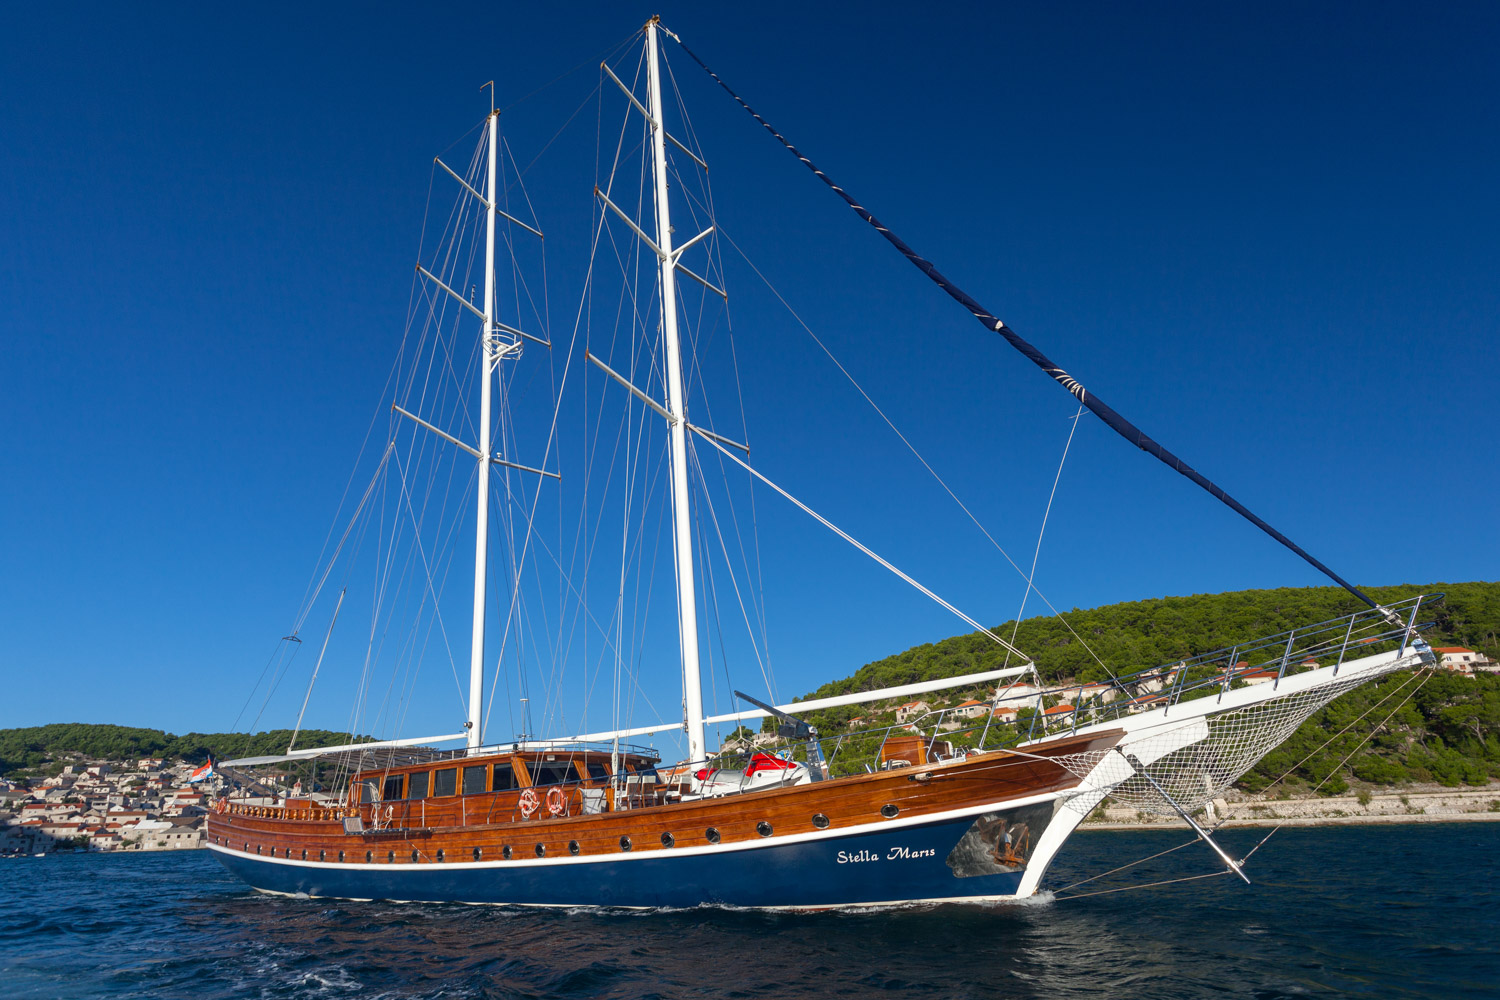 GULET STELLA MARIS  LOA: 38,00m / 125,40ft  GUEST CABINS: 6 Double, 2 Twin  MAX. NUMBER OF GUESTS: 12